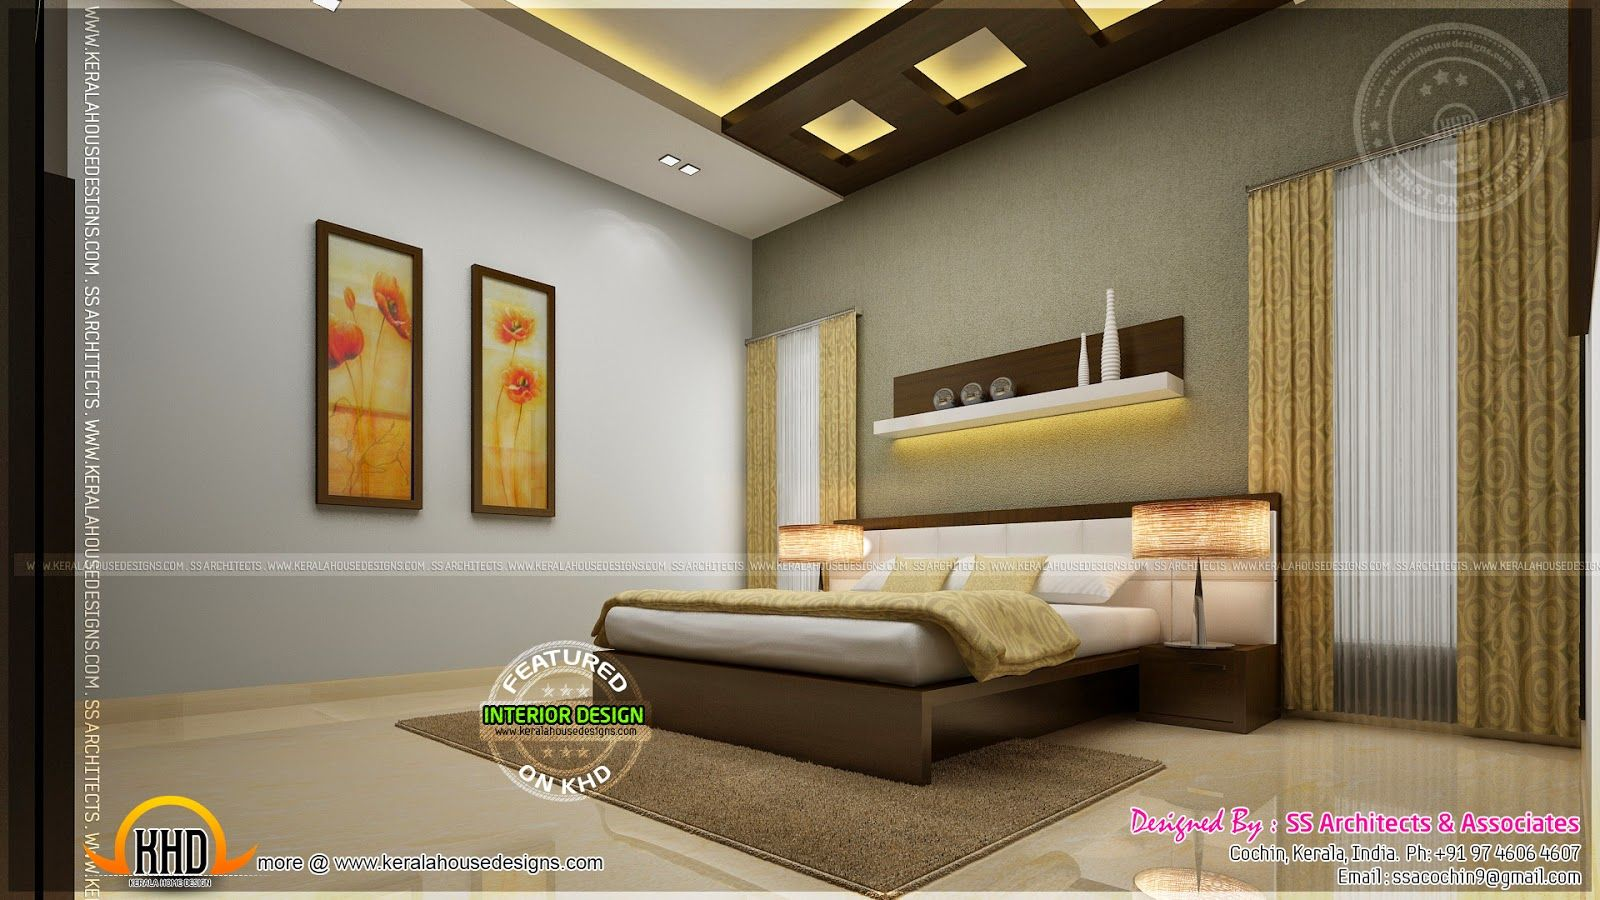 Indian master bedroom interior design google search for Bedroom furniture interior design